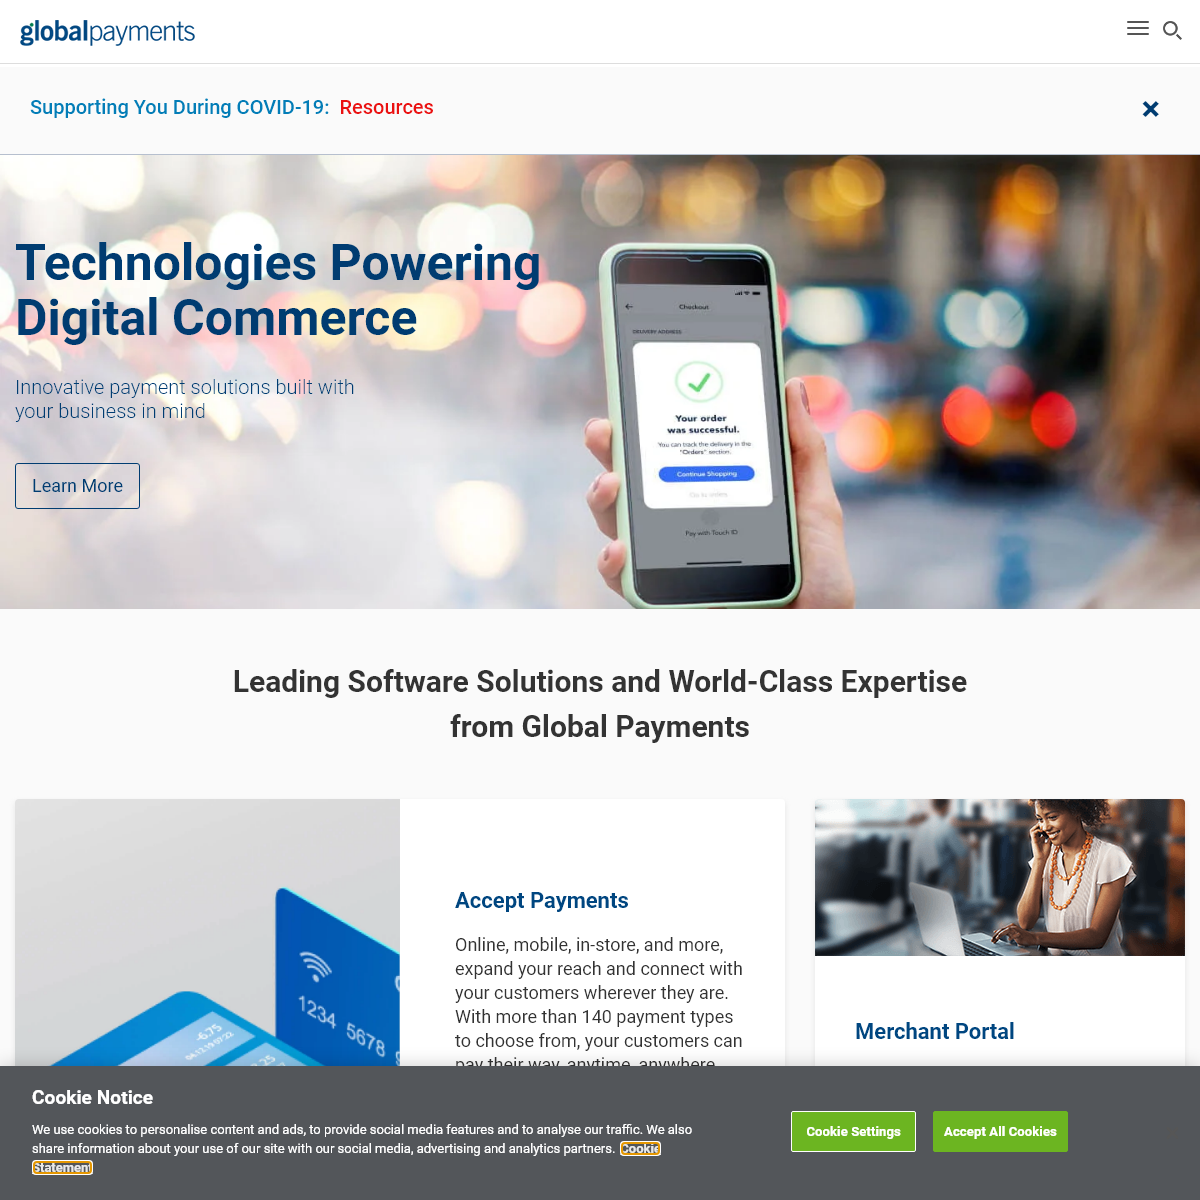 Unrivaled Payments Expertise - Global Payments